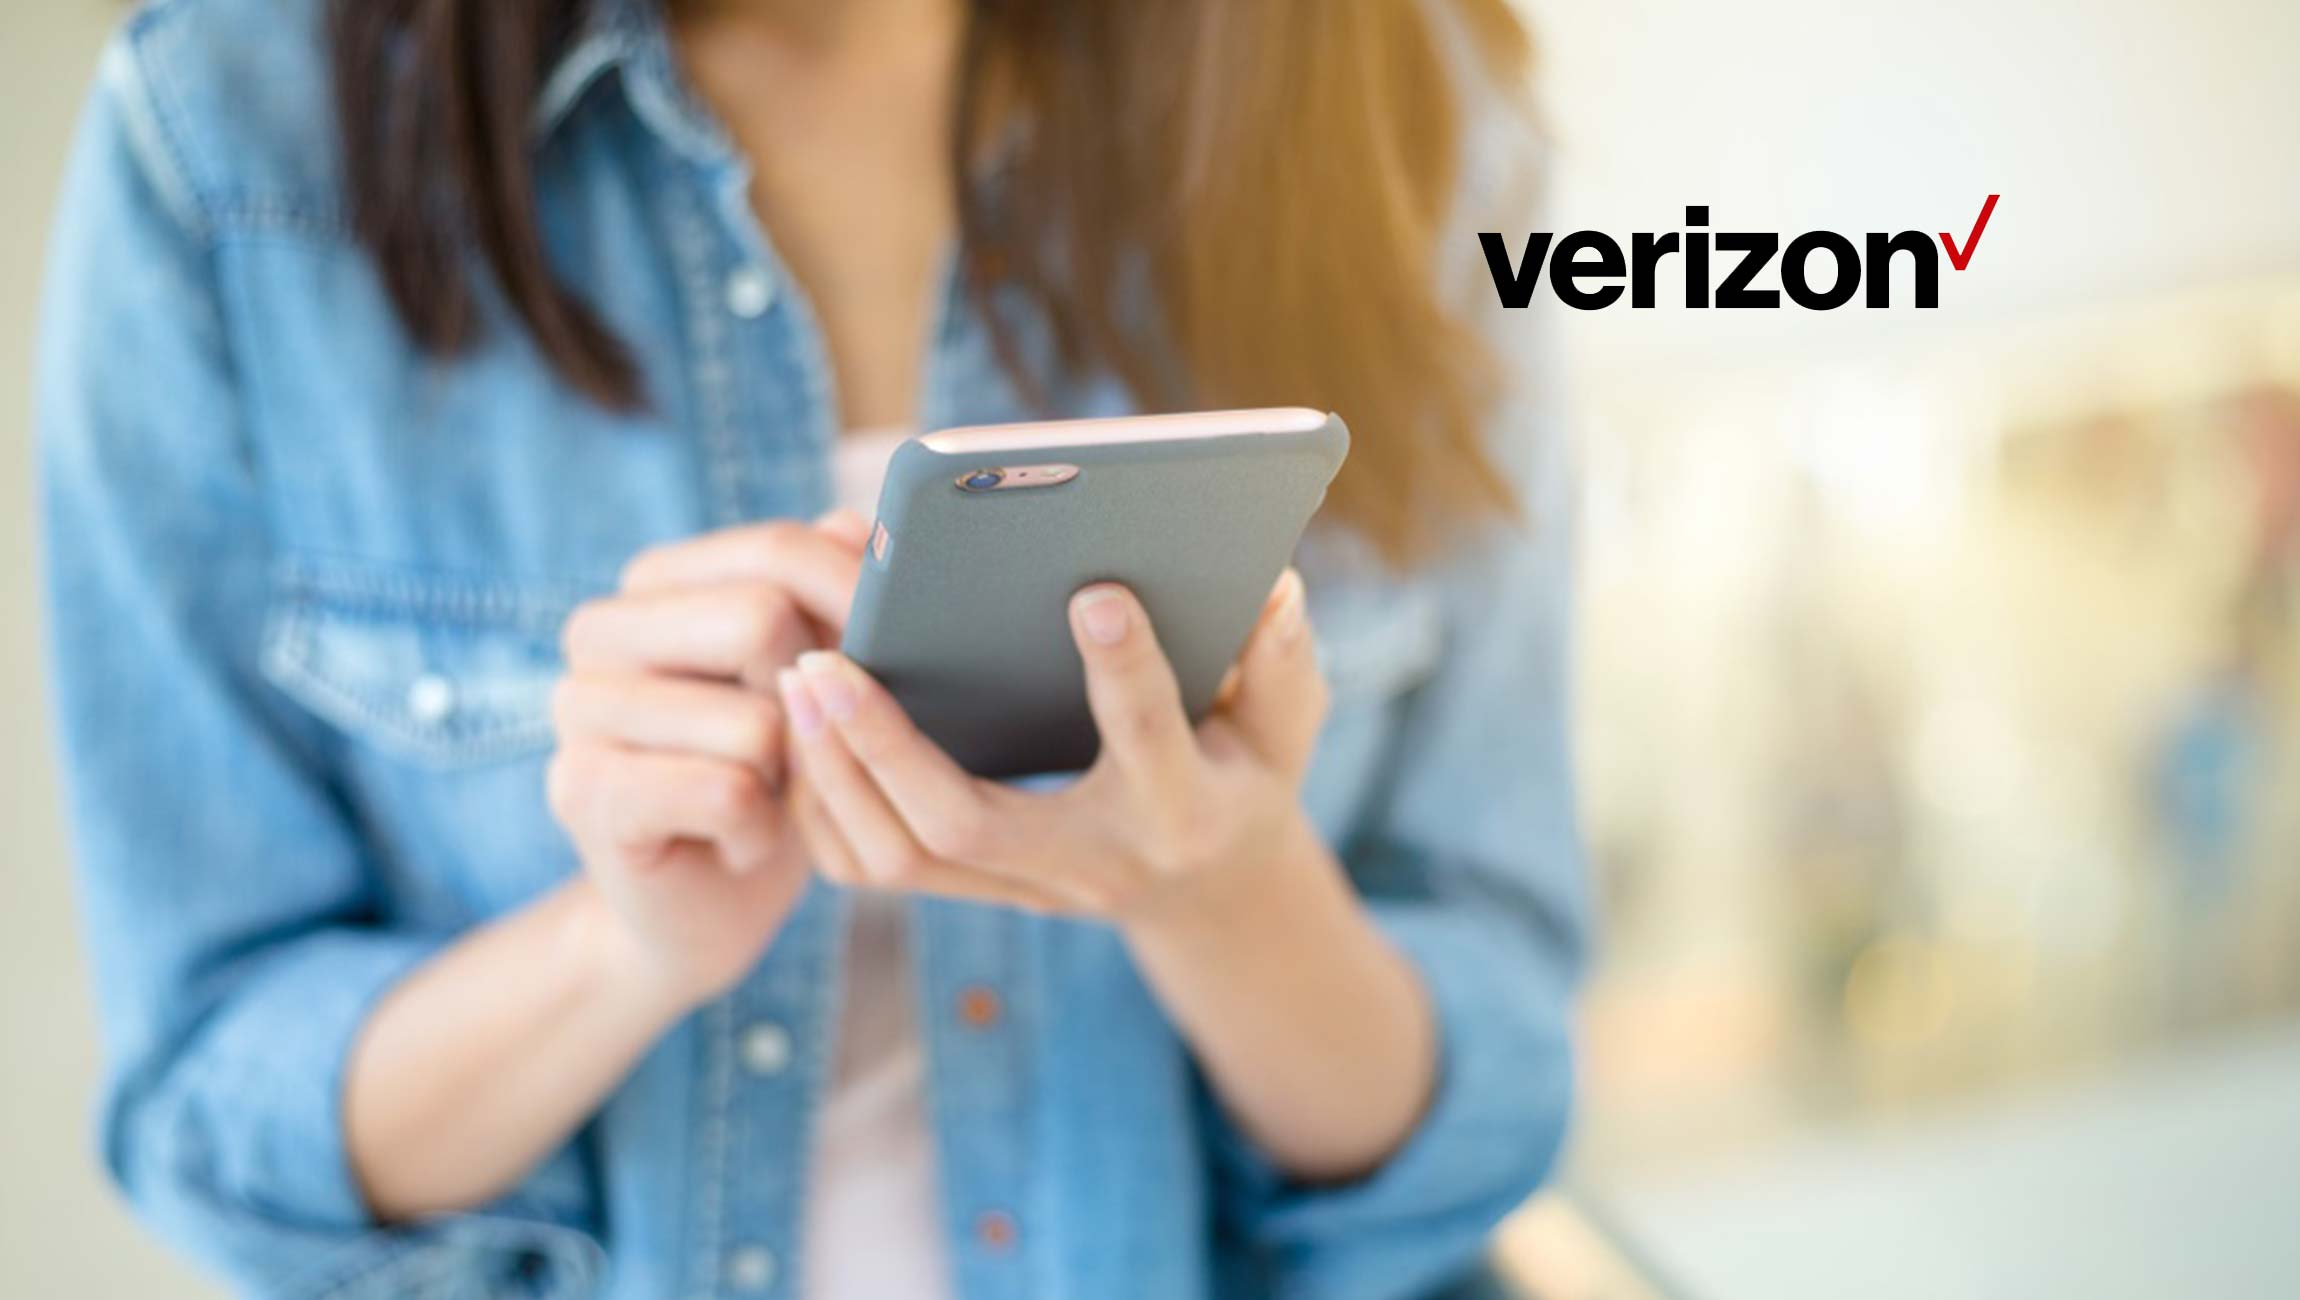 Verizon Media Launches TV Tune-In Attribution to Connect Digital Ads & TV Viewing